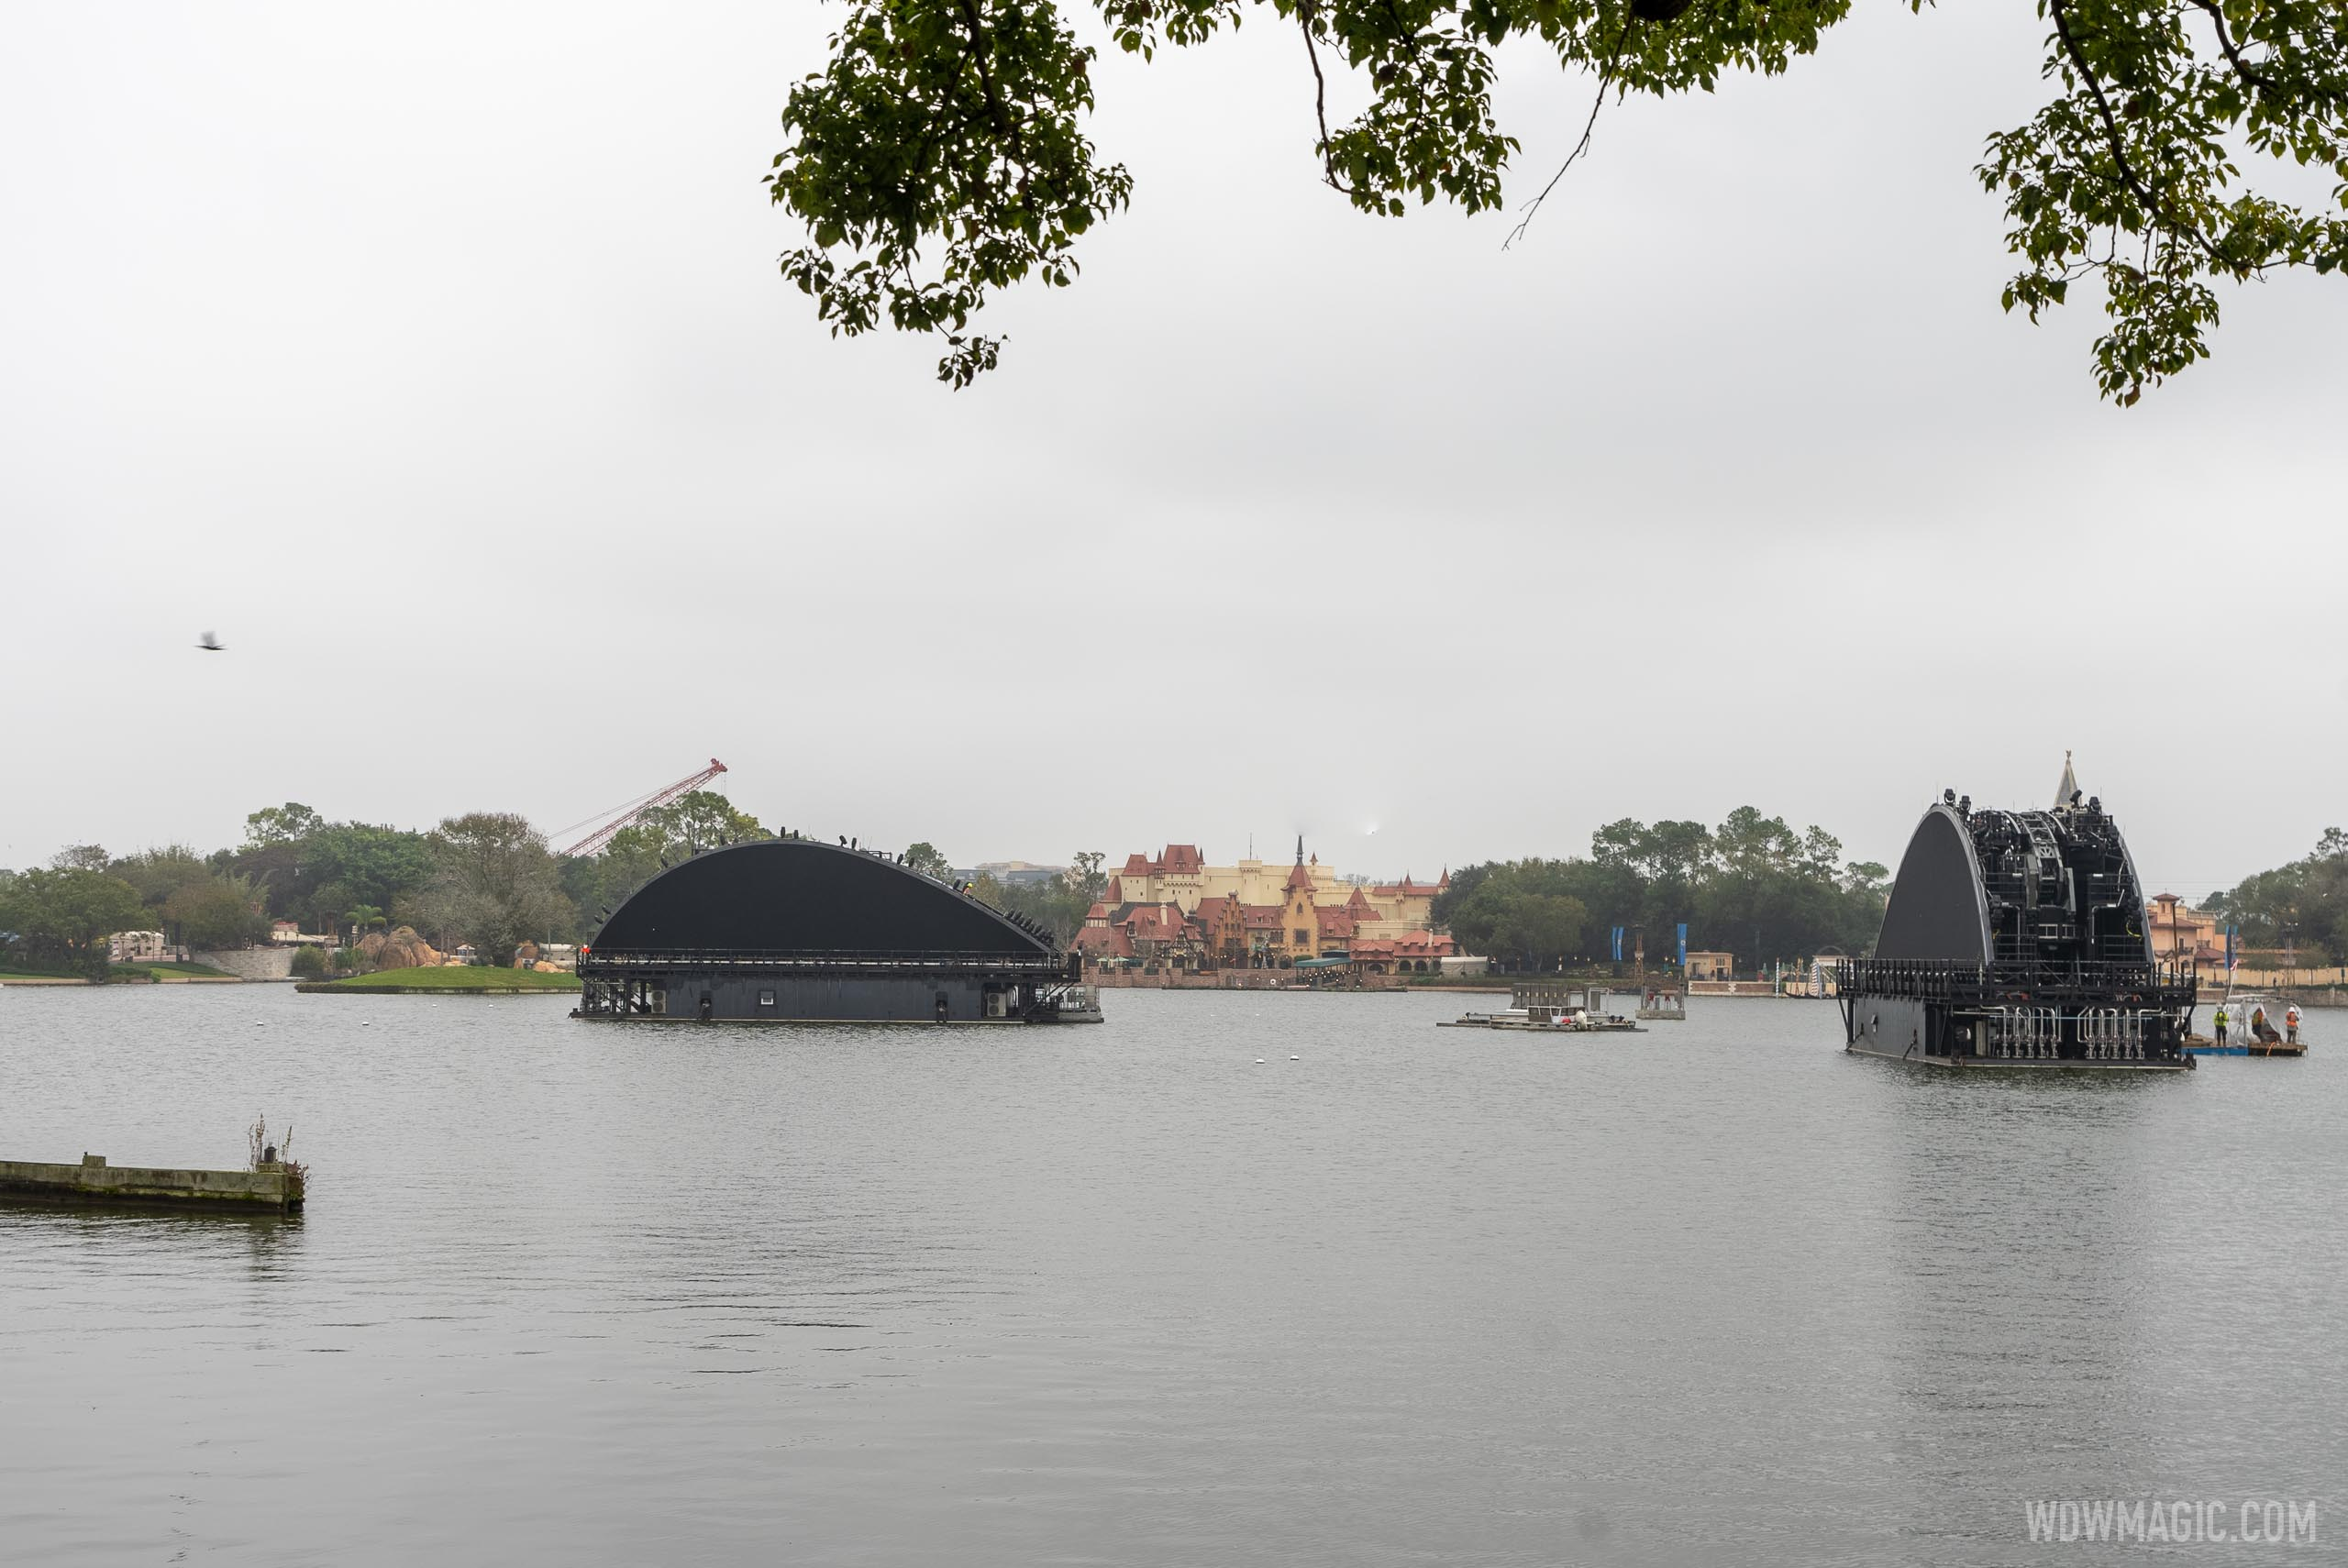 Second Harmonious show barge now in World Showcase Lagoon